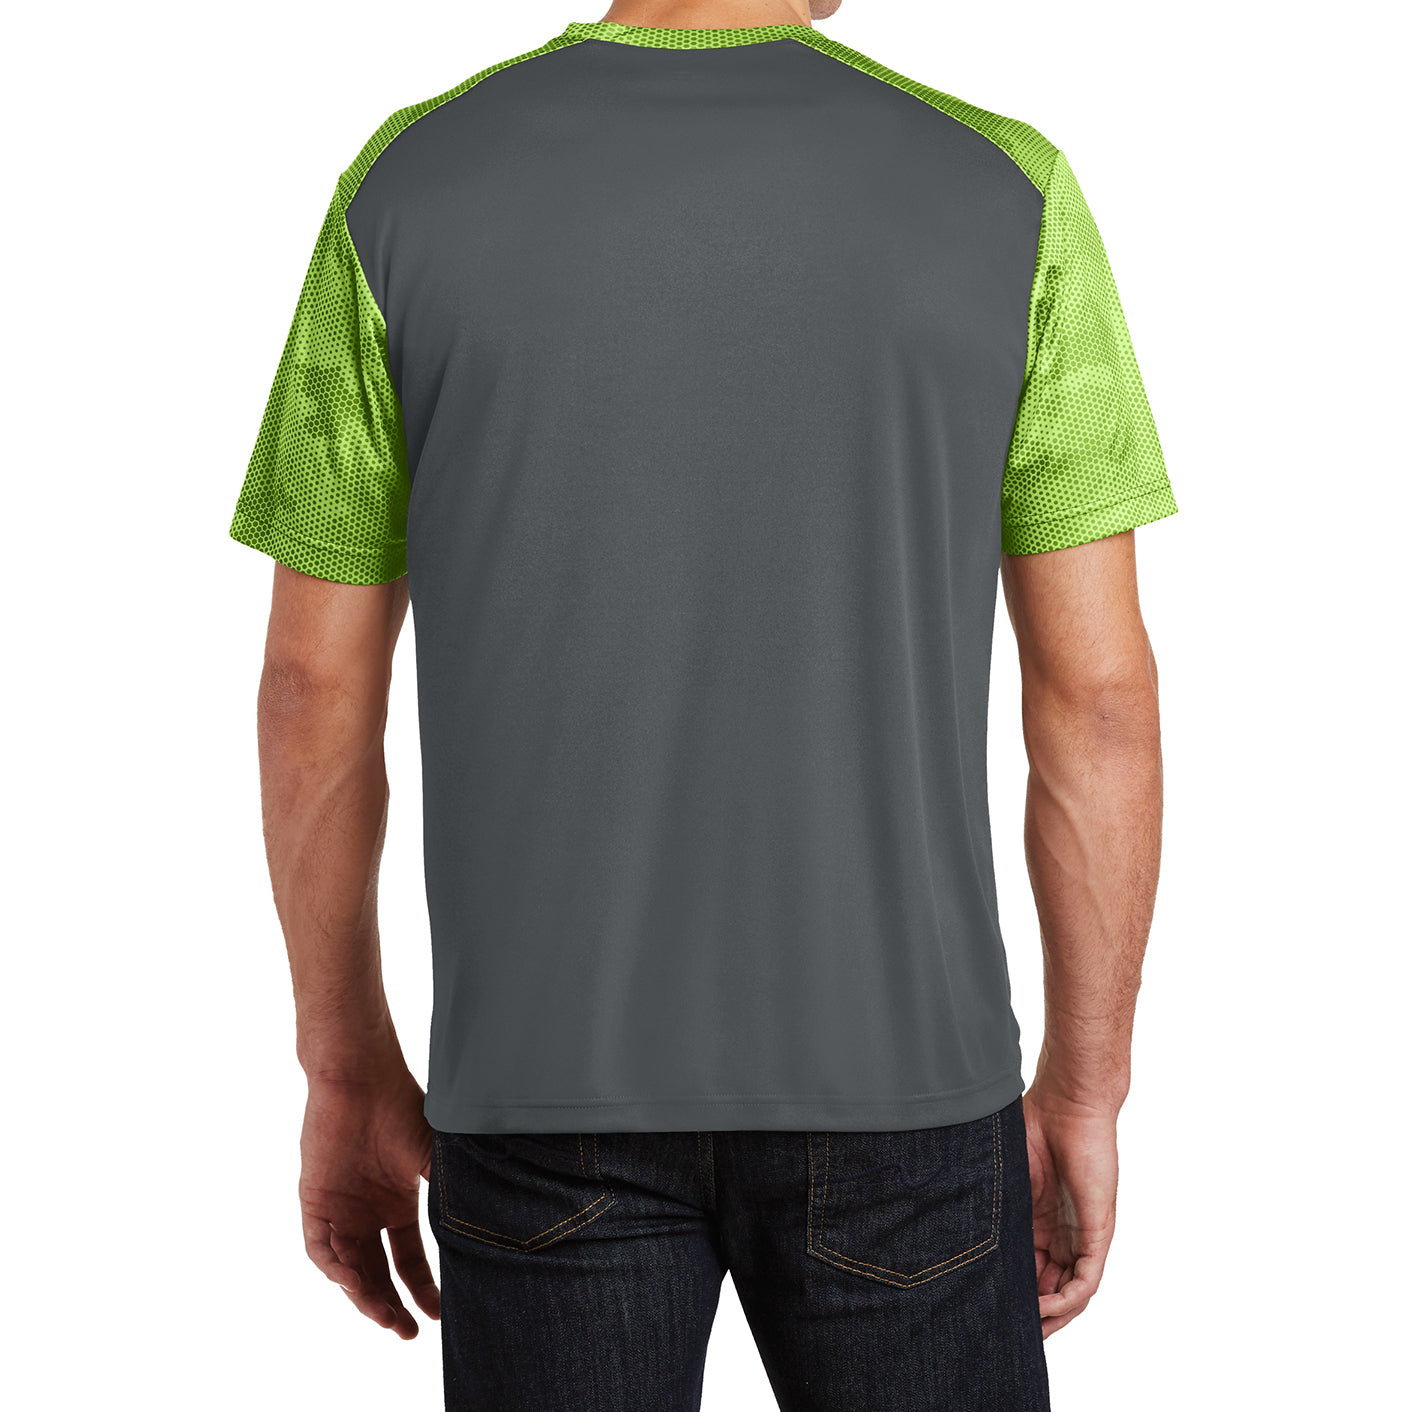 Men's CamoHex Colorblock Tee Shirt Iron Grey/ Lime Shock Back